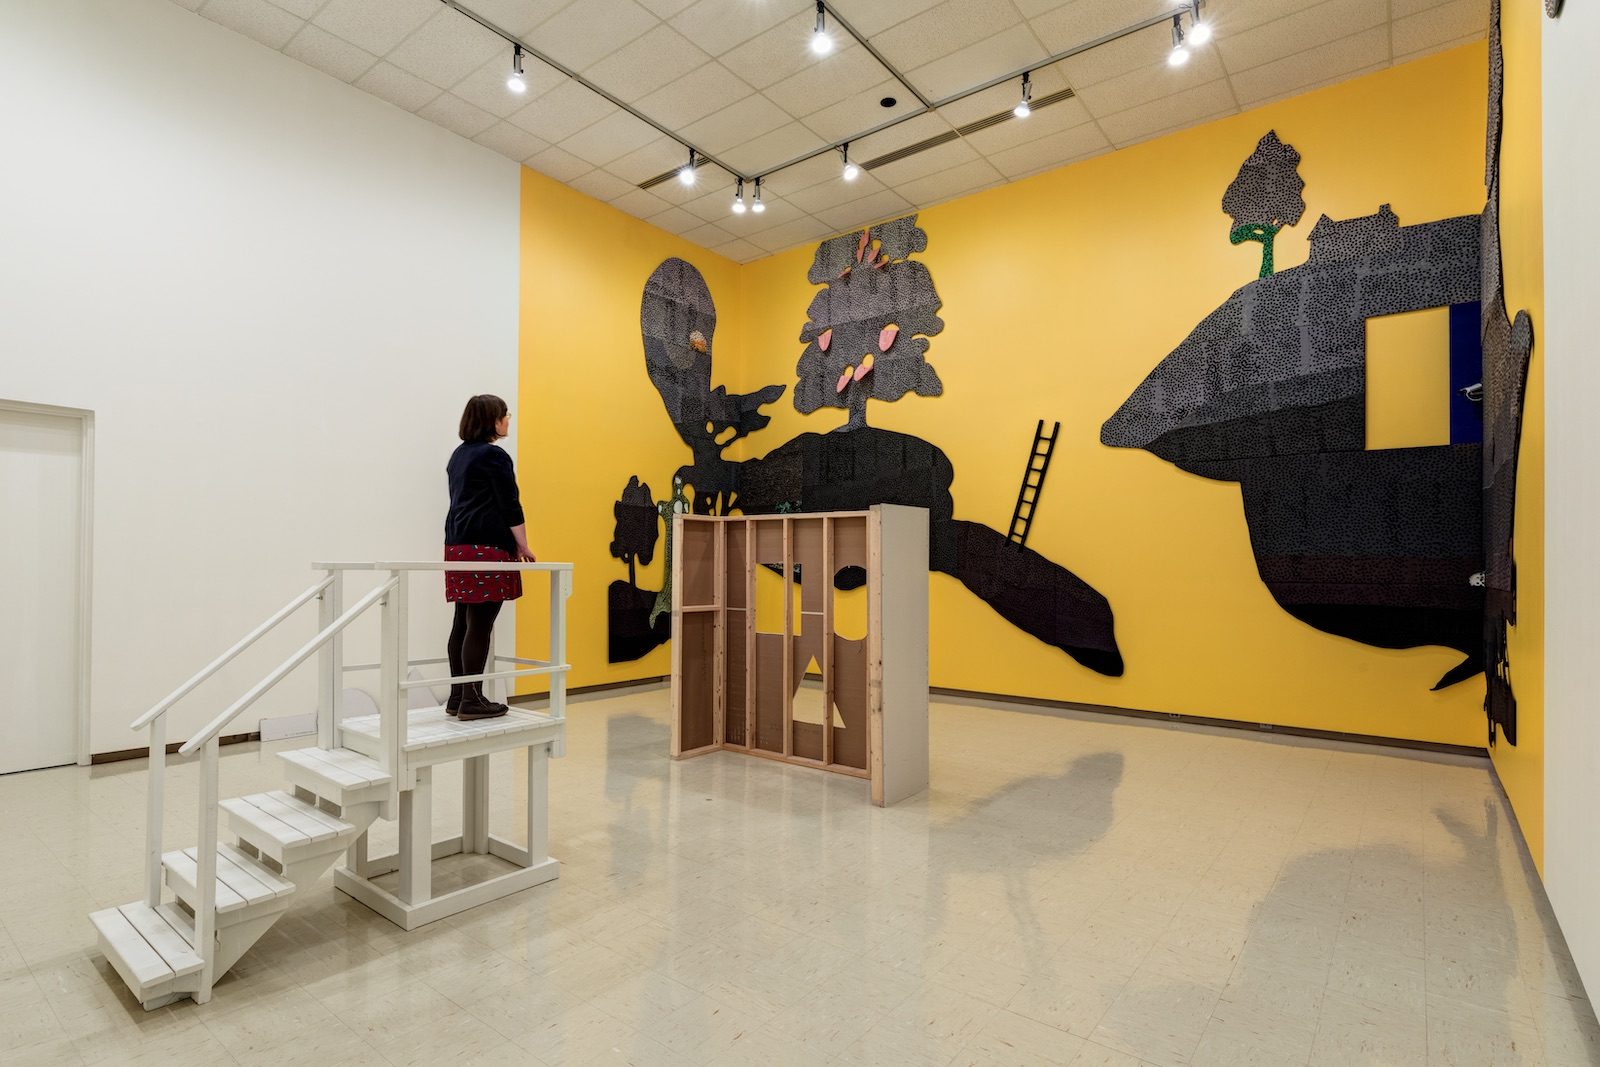 A gallery visitor stands on a white platform looking up to a silhouette of a whimsical landscape, against bright yellow walls. Between the viewer and the landscape is a false wall with a circle, square and triangle cut out.